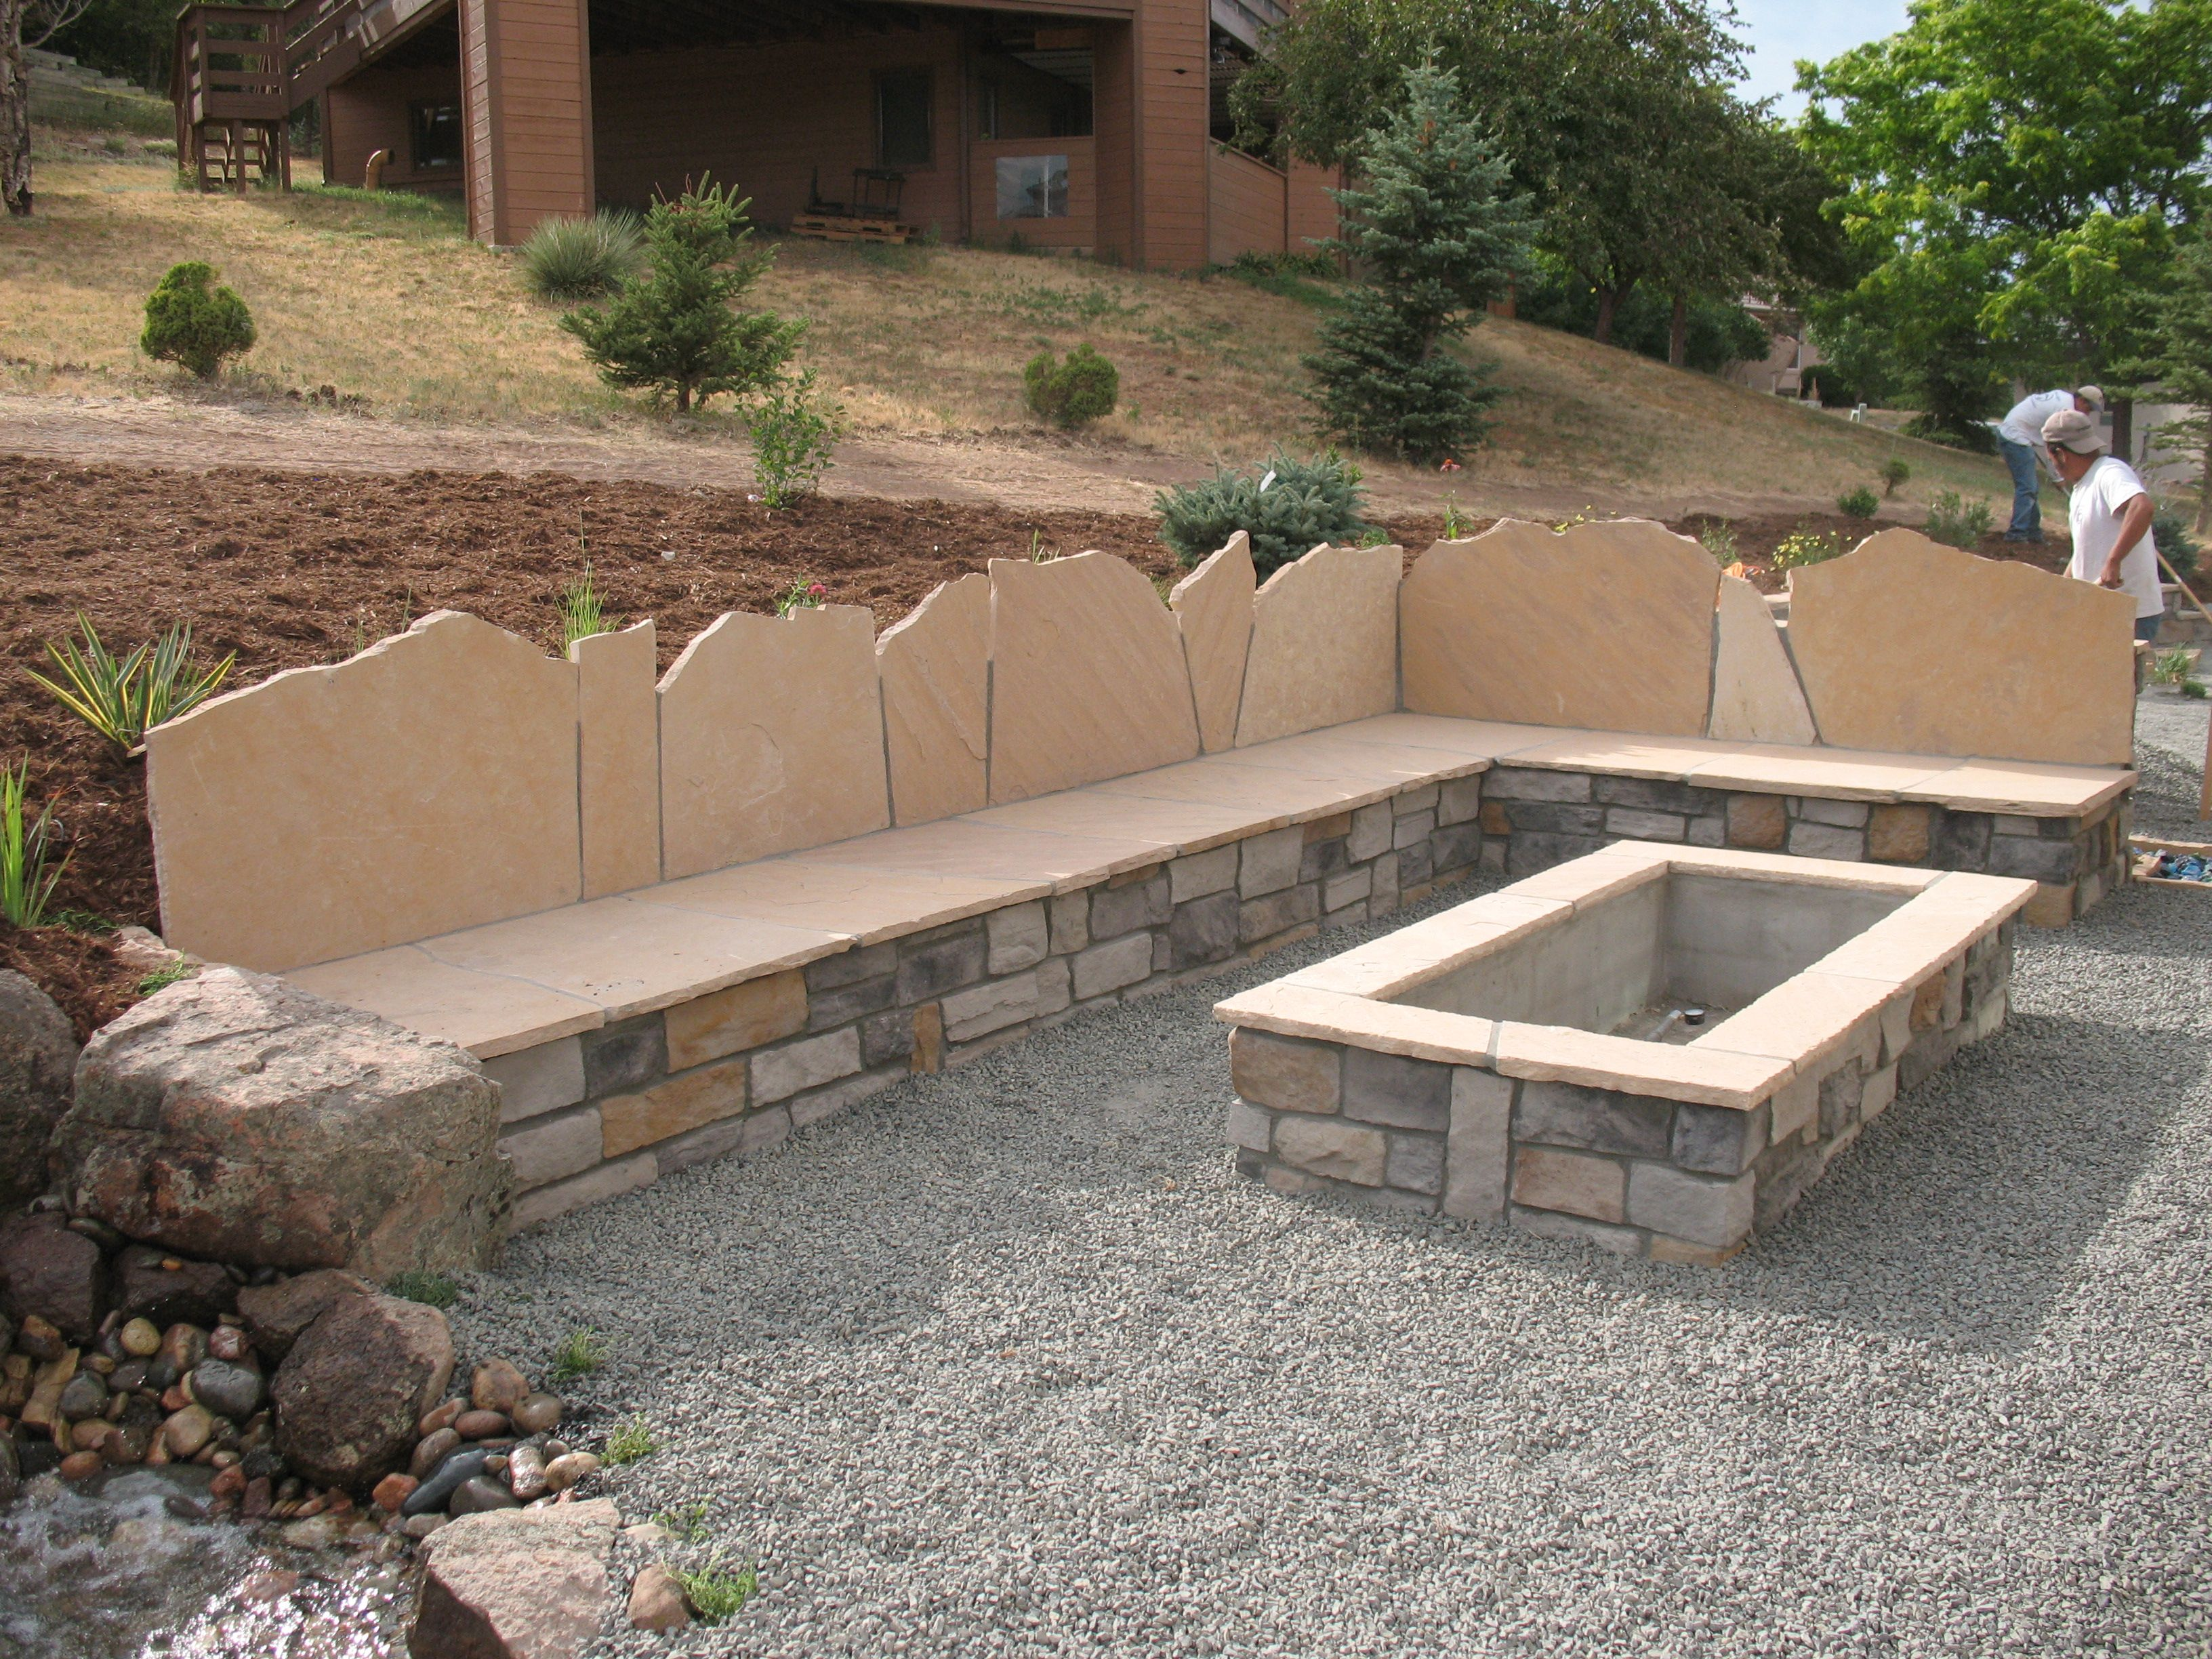 1608g rectangle stone firepit seat wall with back for Rectangular stone fire pit